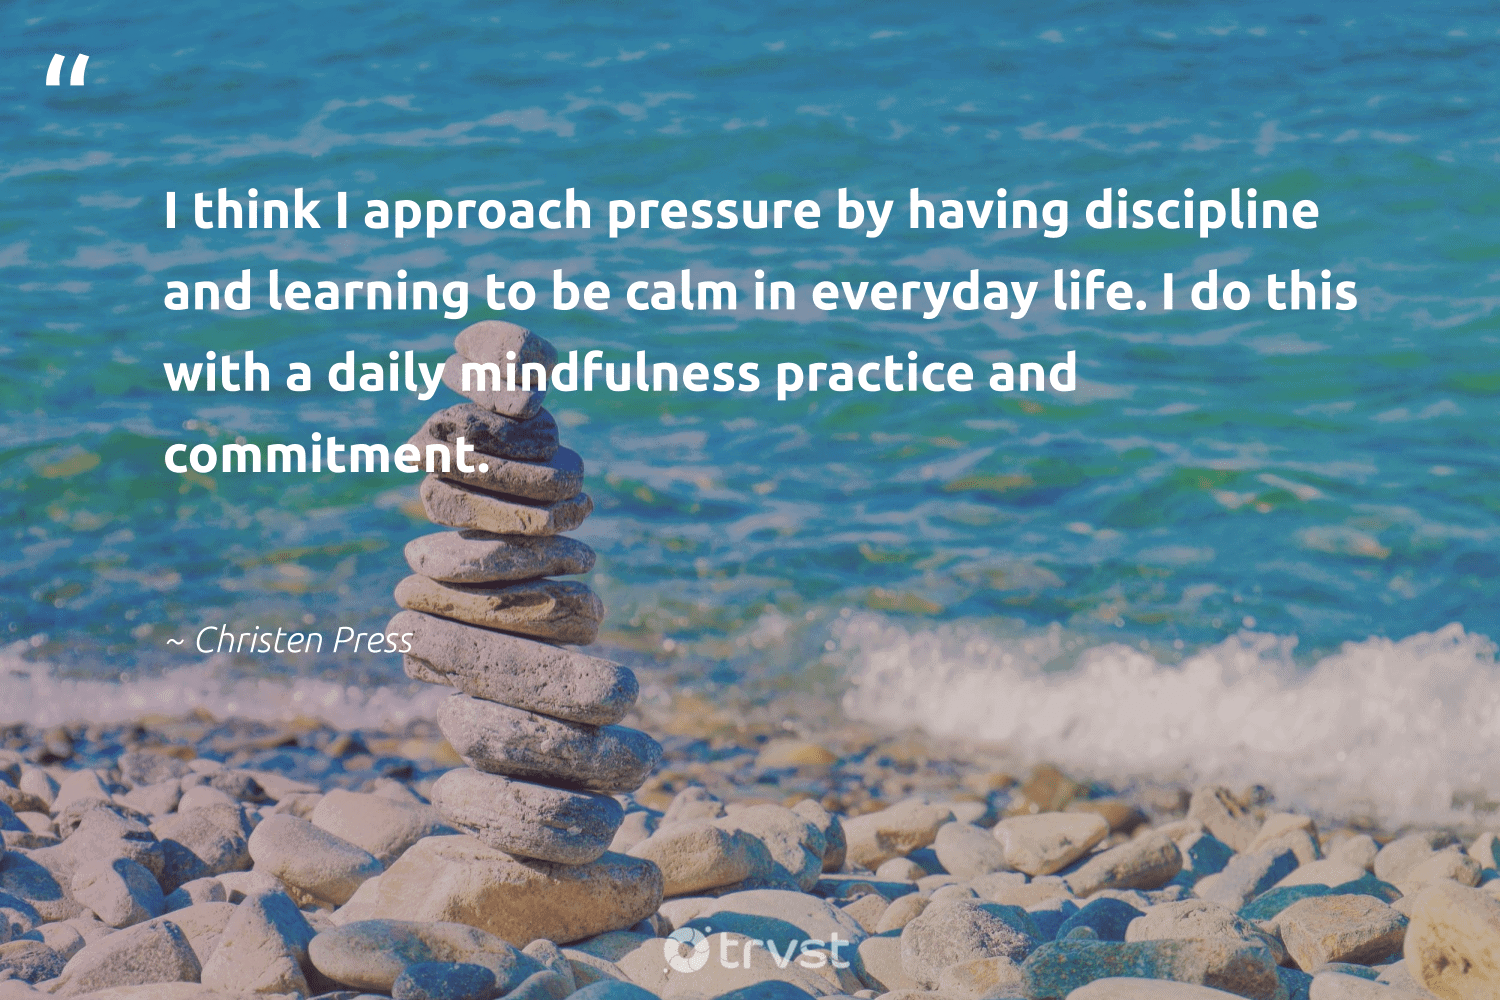 """""""I think I approach pressure by having discipline and learning to be calm in everyday life. I do this with a daily mindfulness practice and commitment.""""  - Christen Press #trvst #quotes #mindfulness #positivity #mindset #nevergiveup #thinkgreen #meditate #meditation #changemakers #dotherightthing #creativemindset"""